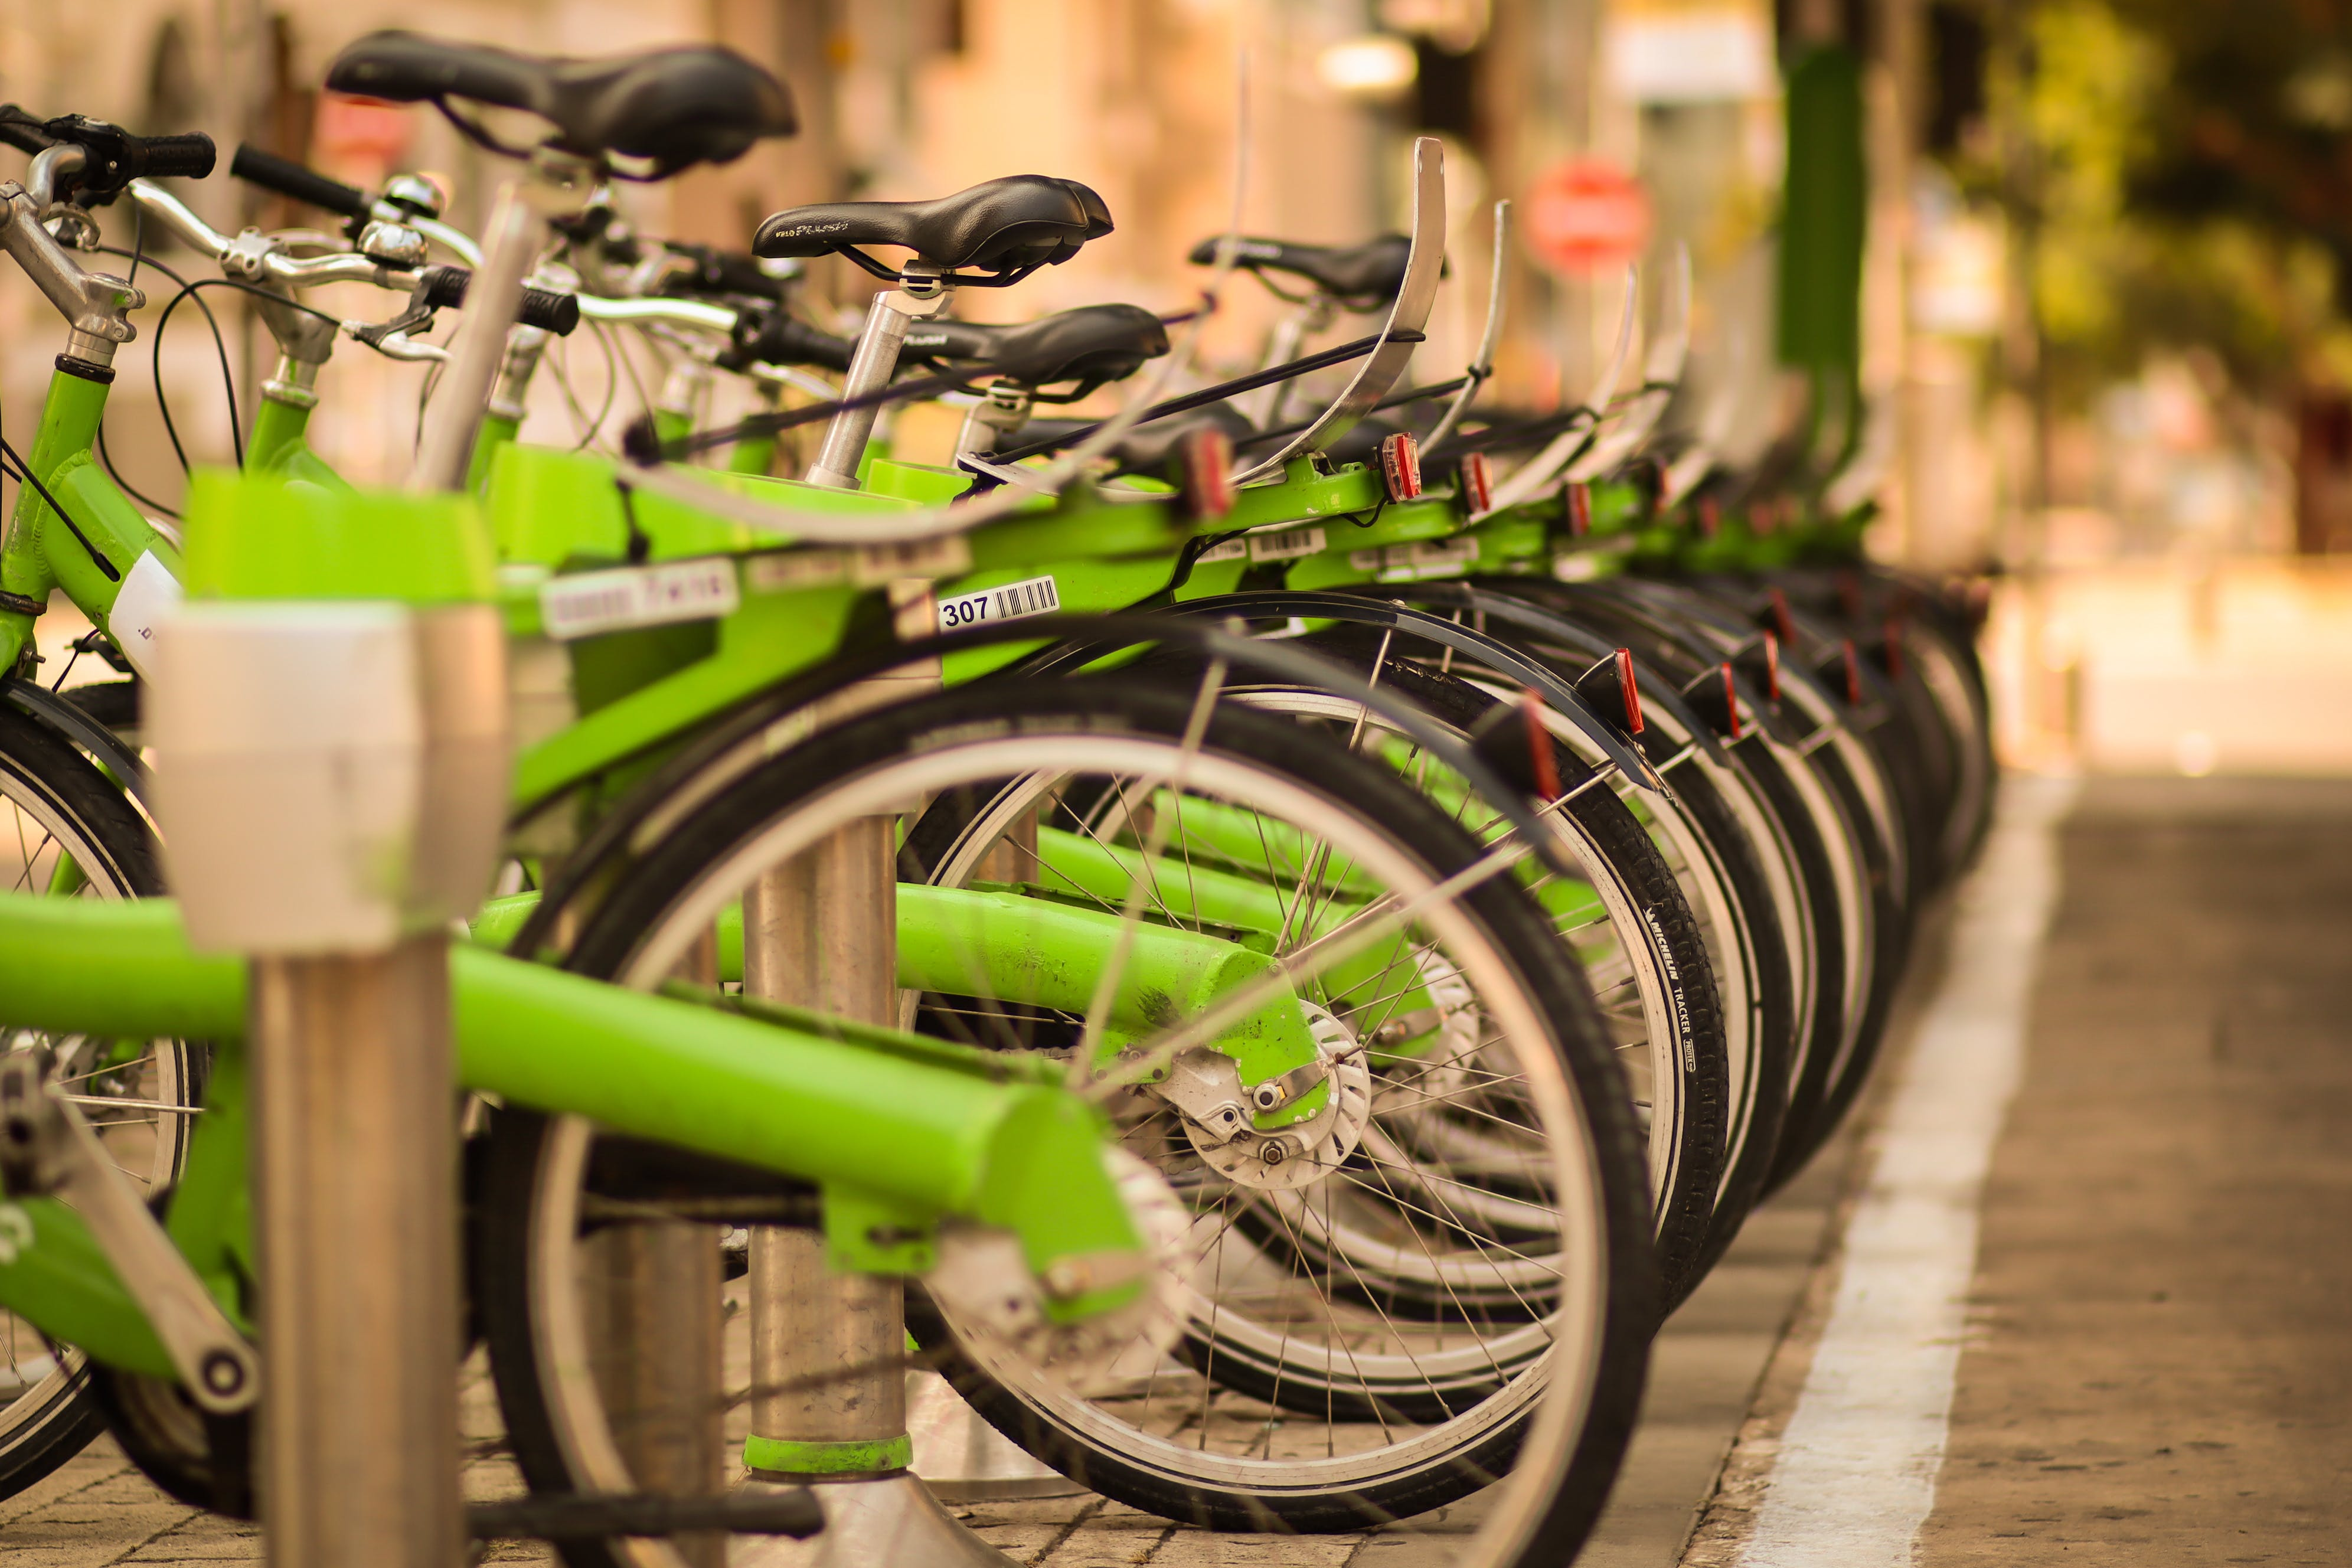 Free stock photo of bicycle, depth of field, green, green bicycle